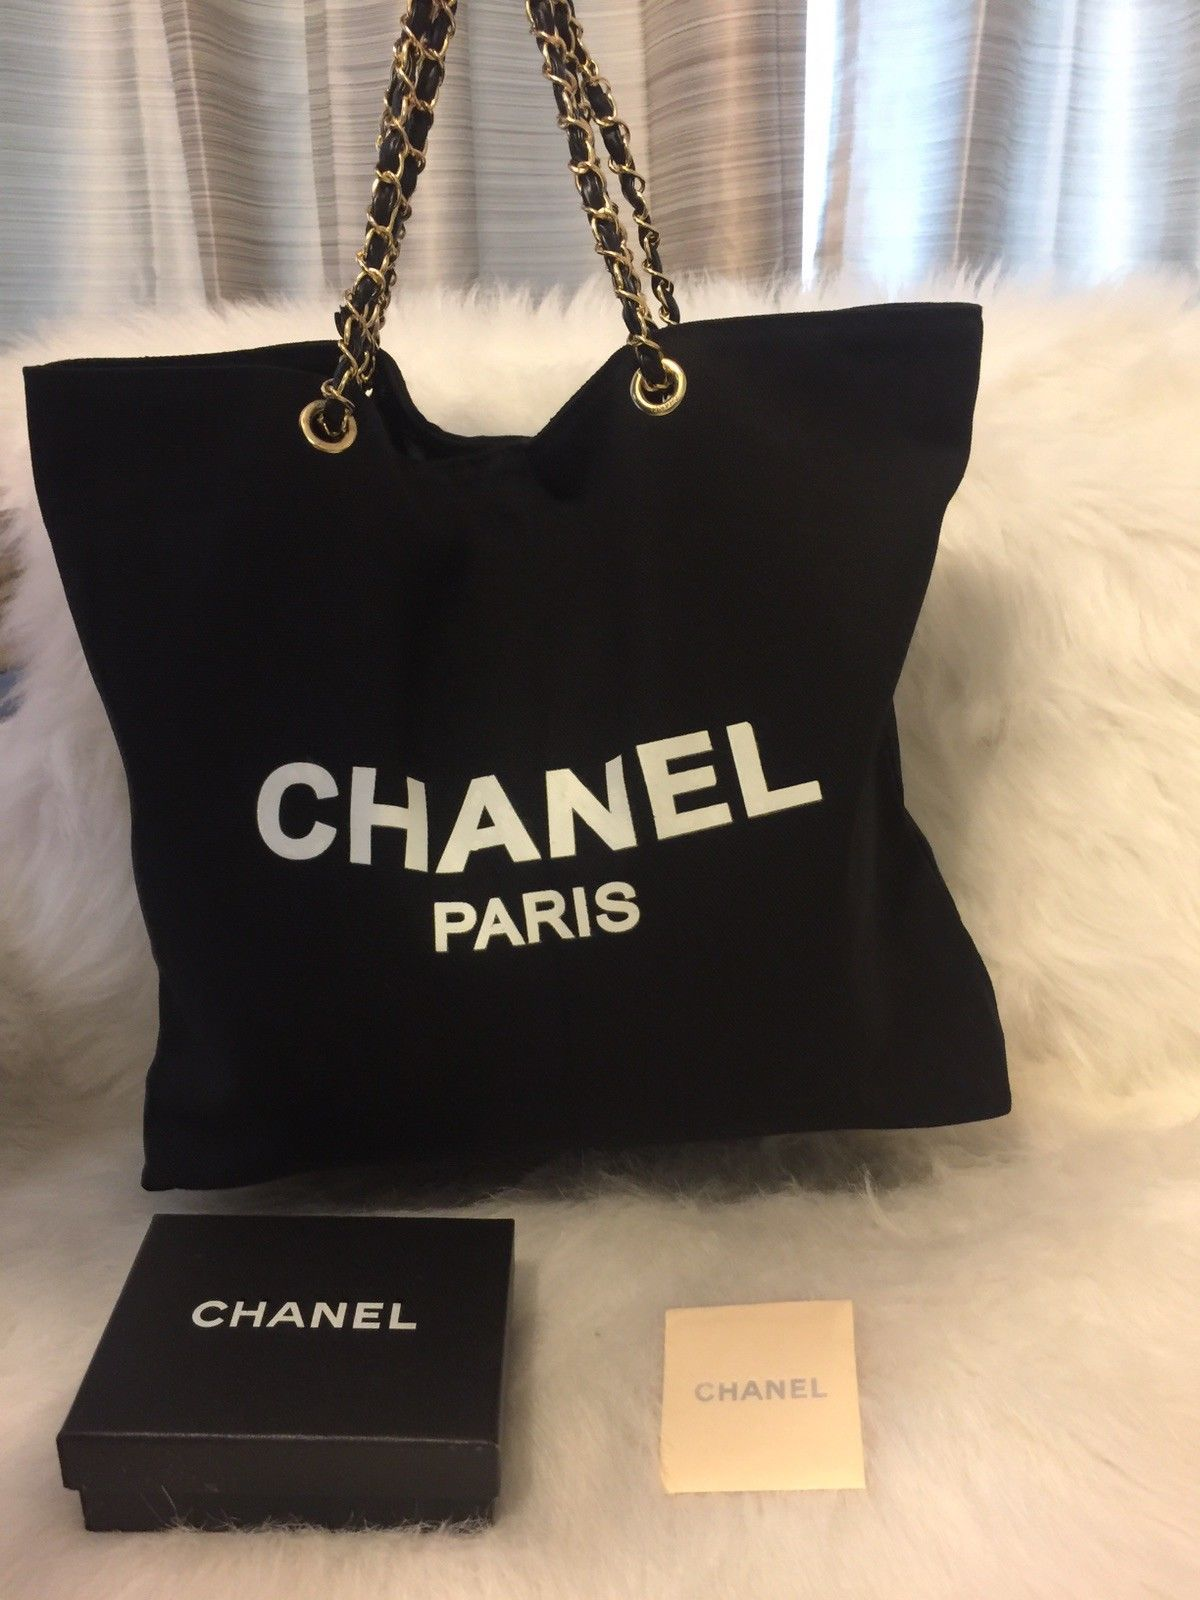 Chanel Canvas Vip Gift Shopper Tote Bag Large Gold Chain  127.5 ... fa28a92aa377f